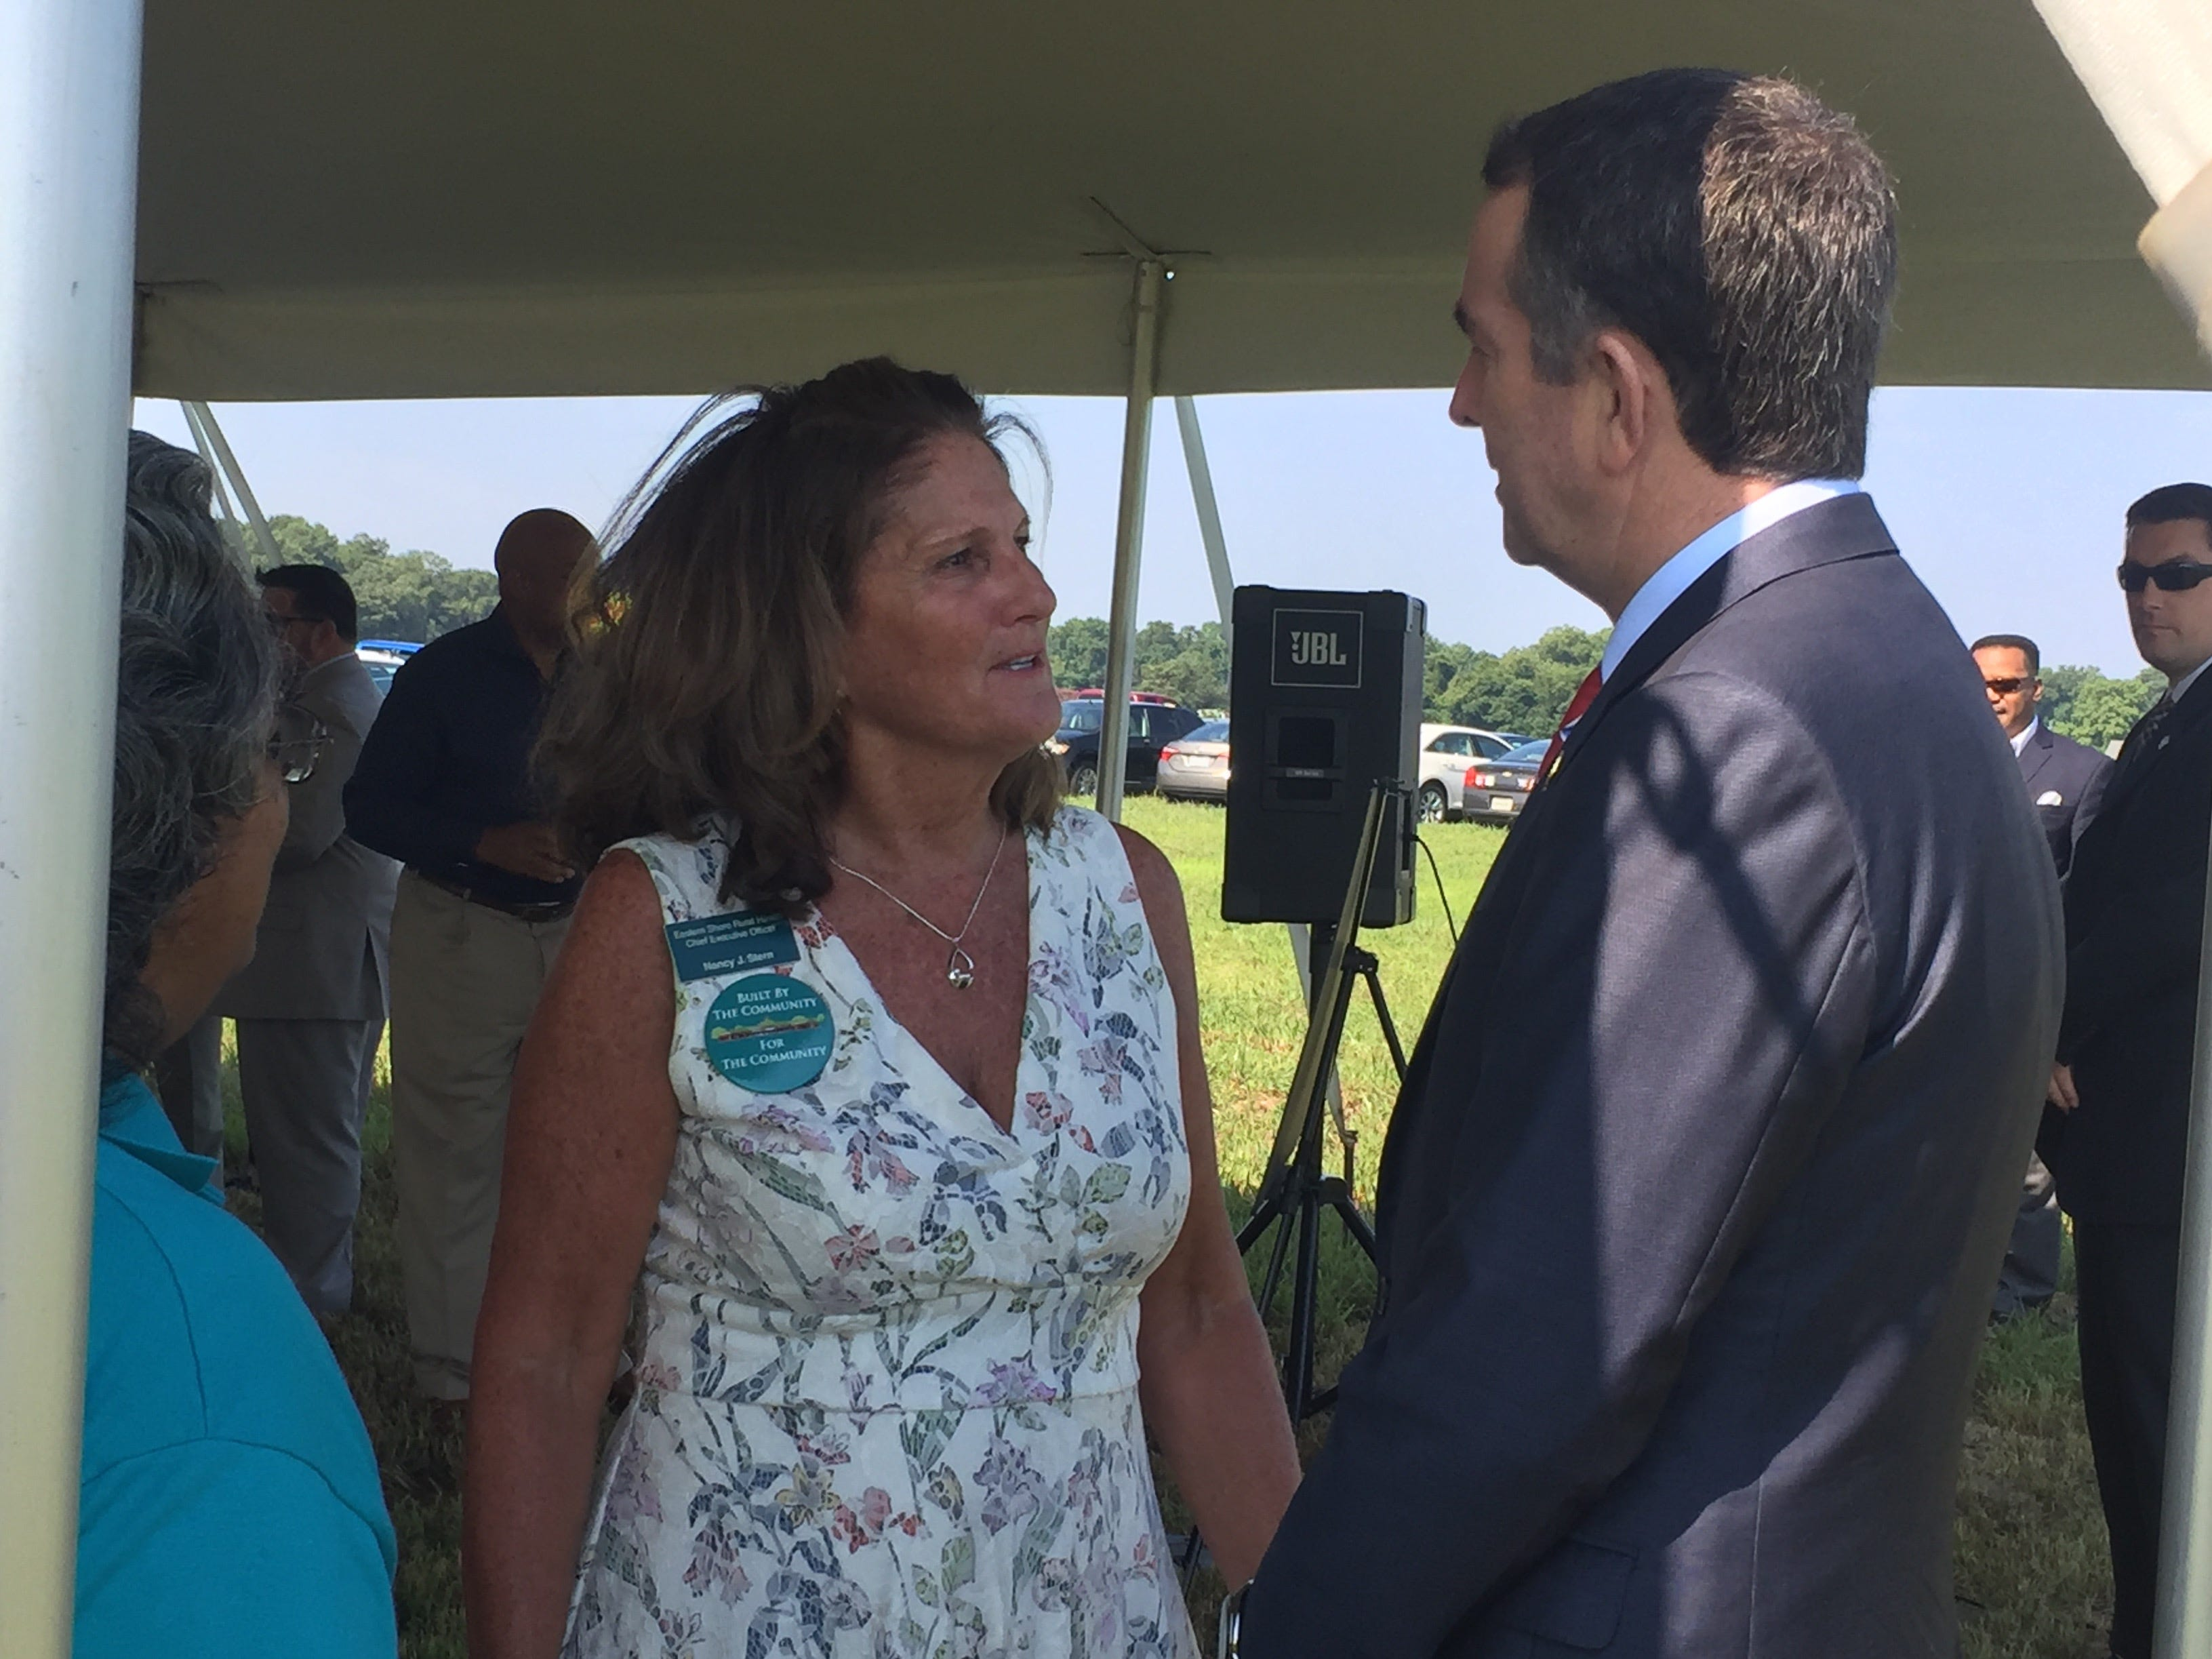 Nancy Stern, Eastern Shore Rural Health System CEO, chats with Gov. Ralph Northam before a groundbreaking ceremony for Eastville Community Health Center in Eastville, Virginia on Wednesday, Aug. 15, 2018.